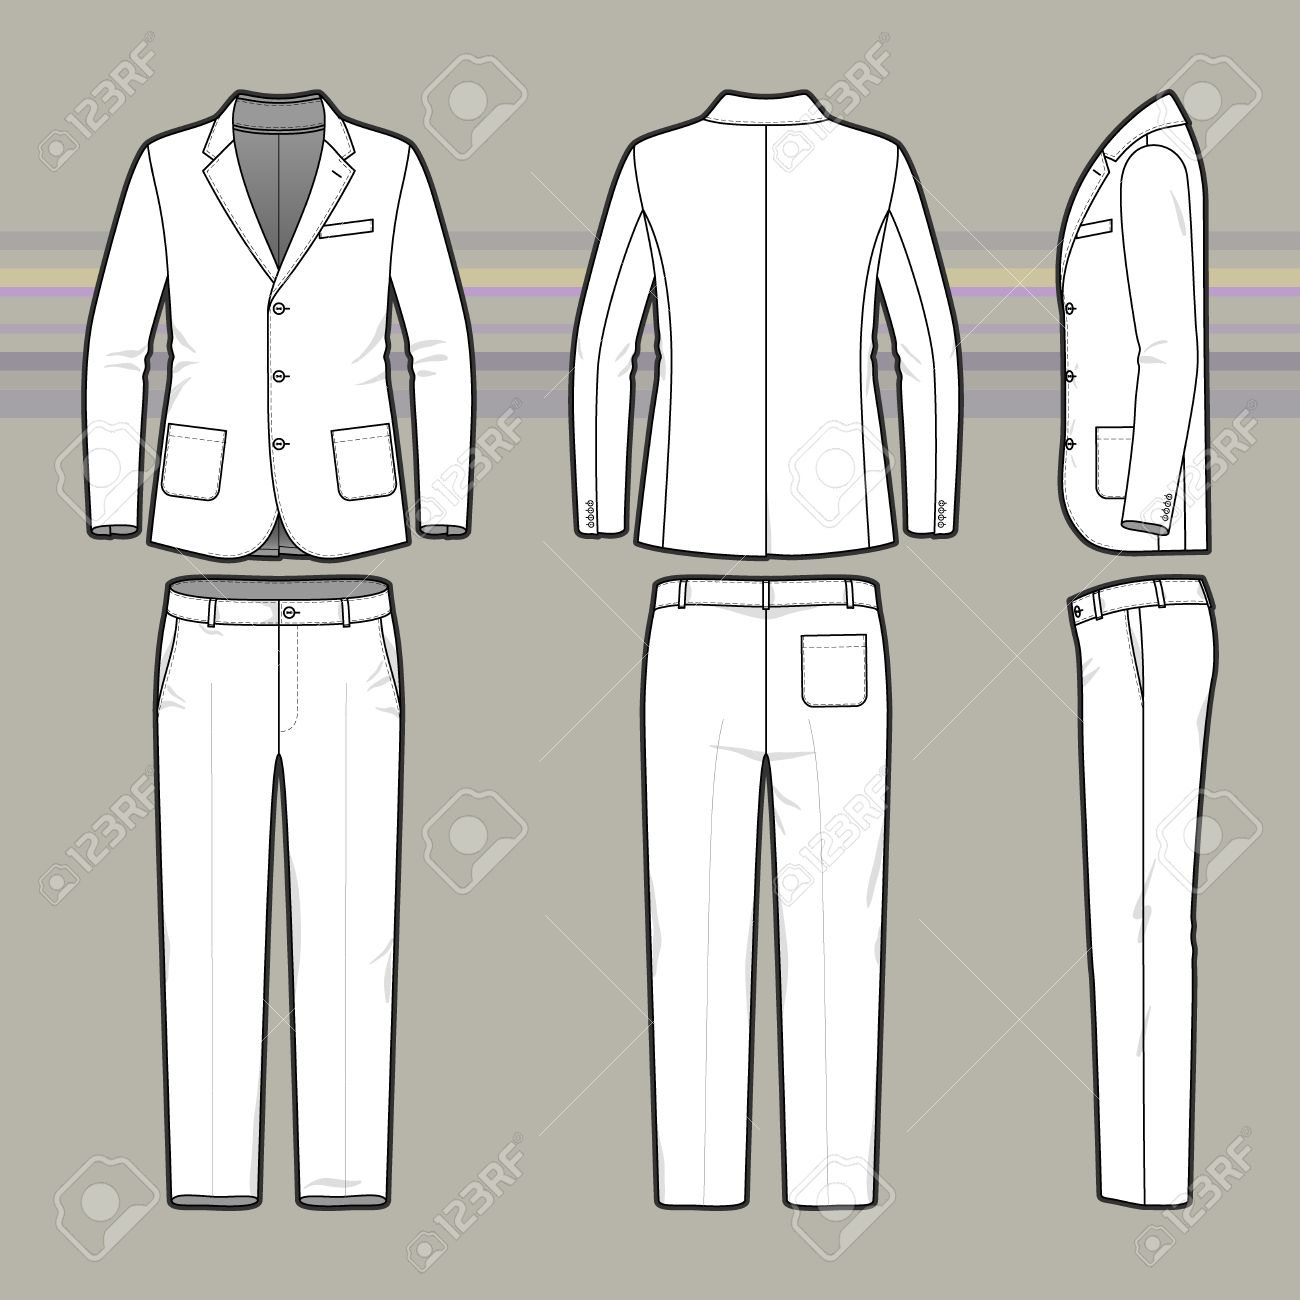 blank template of classic blazer and pants in front